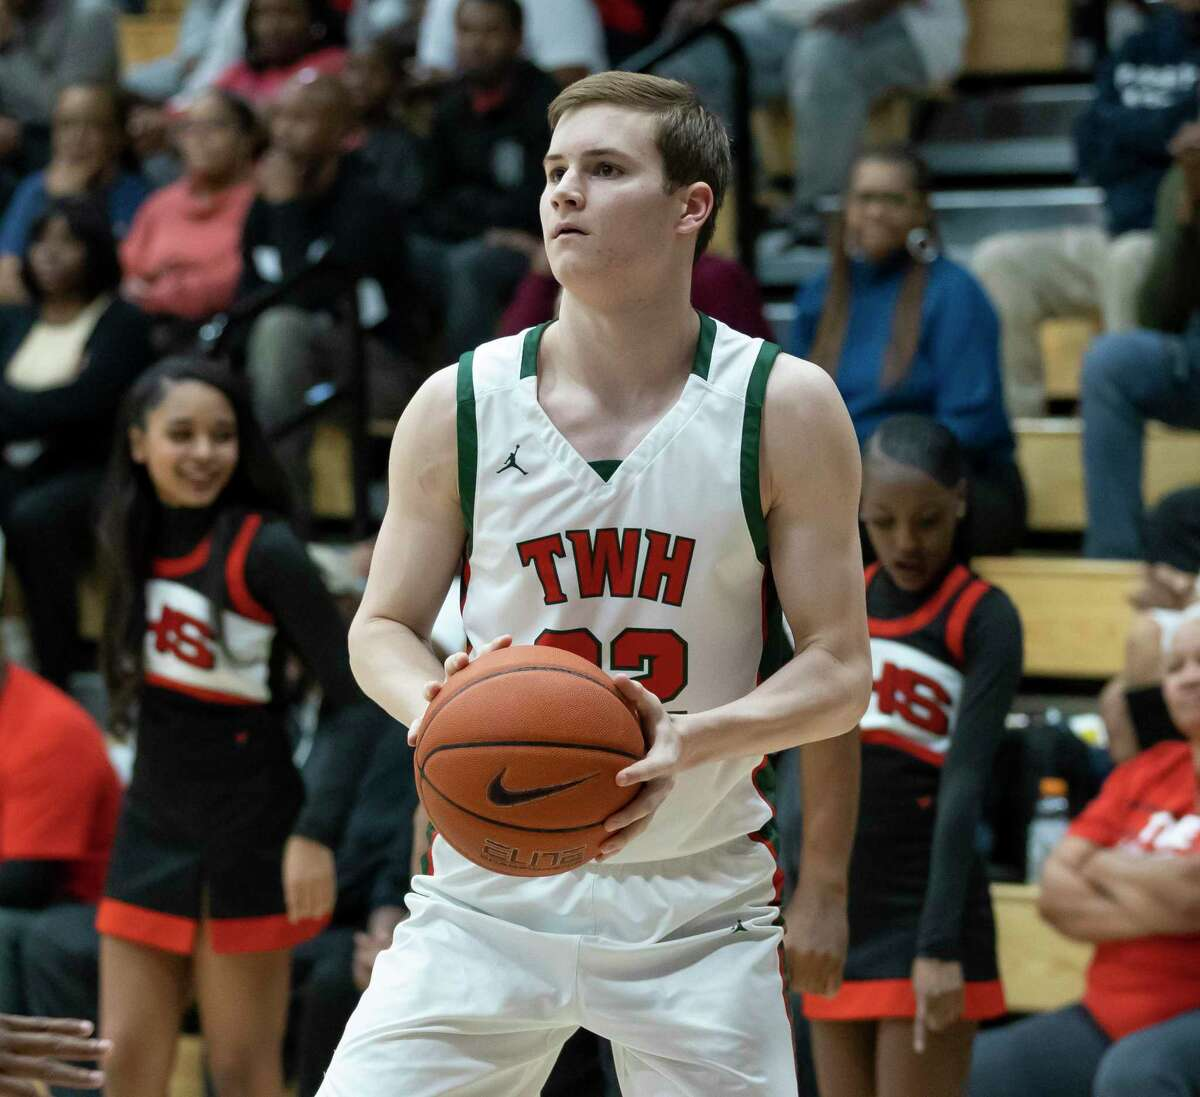 Woodlands guard Brock Luechtefeld (22) shoots for a 3-pointer during the first half in a Region II-6A area boys basketball playoff against Westfield High School at Grand Oaks high school, Tuesday, Feb. 25, 2020.